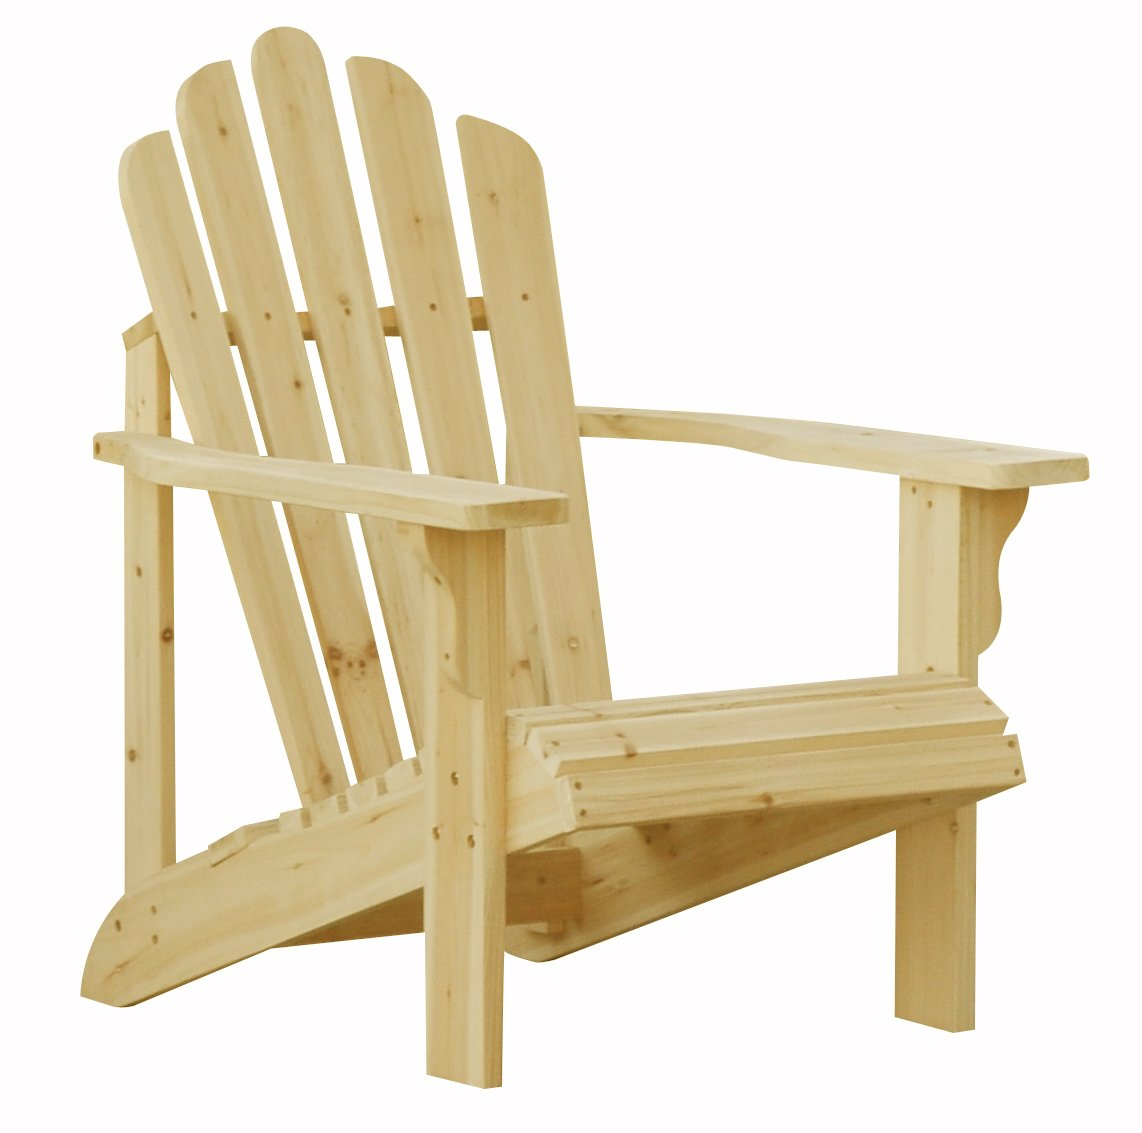 Amazon com   Shine Company Westport Adirondack Chair  Natural   Patio Chair  Covers   Patio  Lawn   GardenAmazon com   Shine Company Westport Adirondack Chair  Natural  . Adirondack Furniture Company. Home Design Ideas